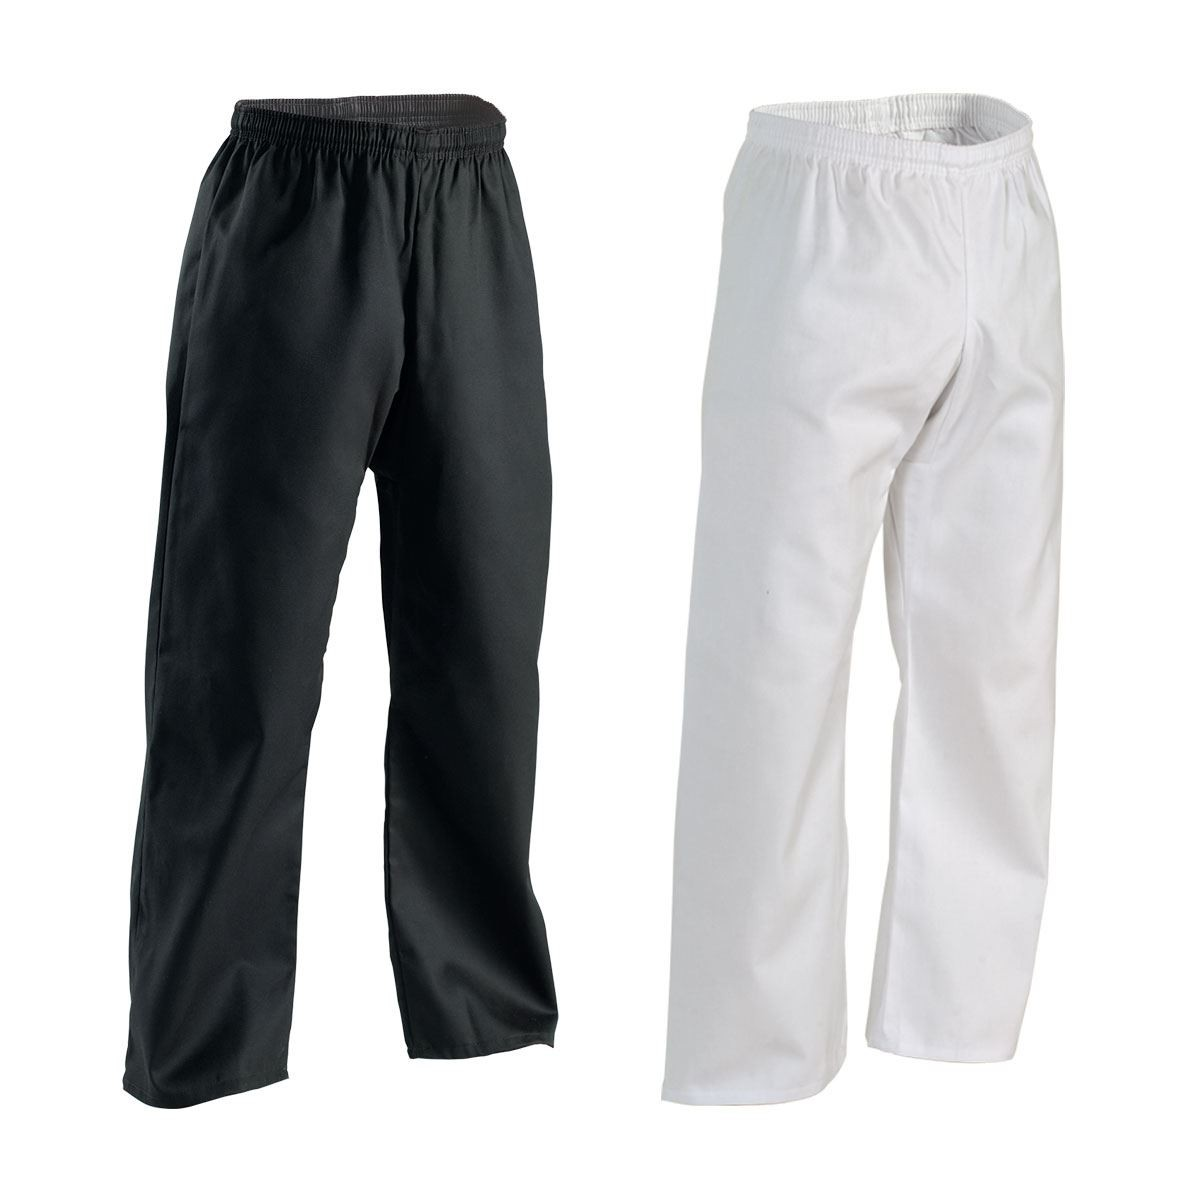 Middleweight Student Elastic Waist Pant